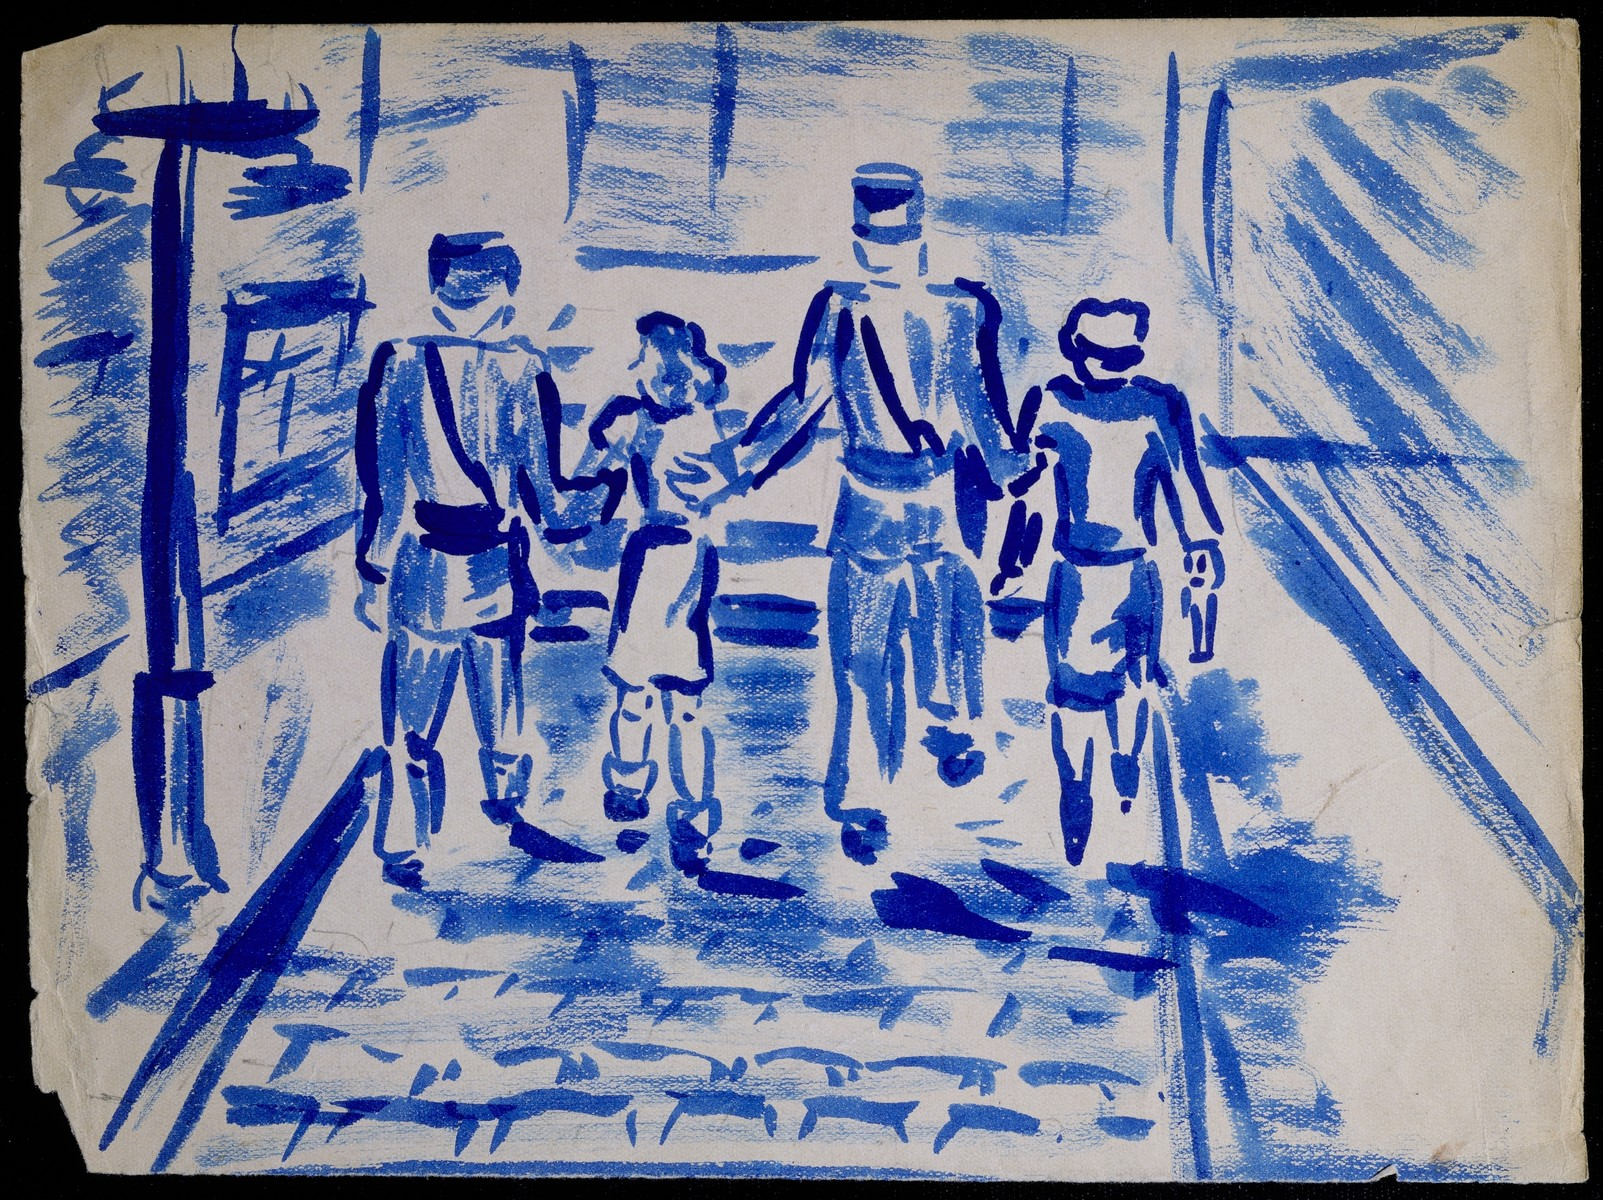 """A page of a sketchbook created by Elizabeth Kaufmann during her stay in Nazi-occupied France.   The drawing in blue of a street scene with four figures is entitled """"Elizabeth and her mother arrested by French gendarmes."""""""